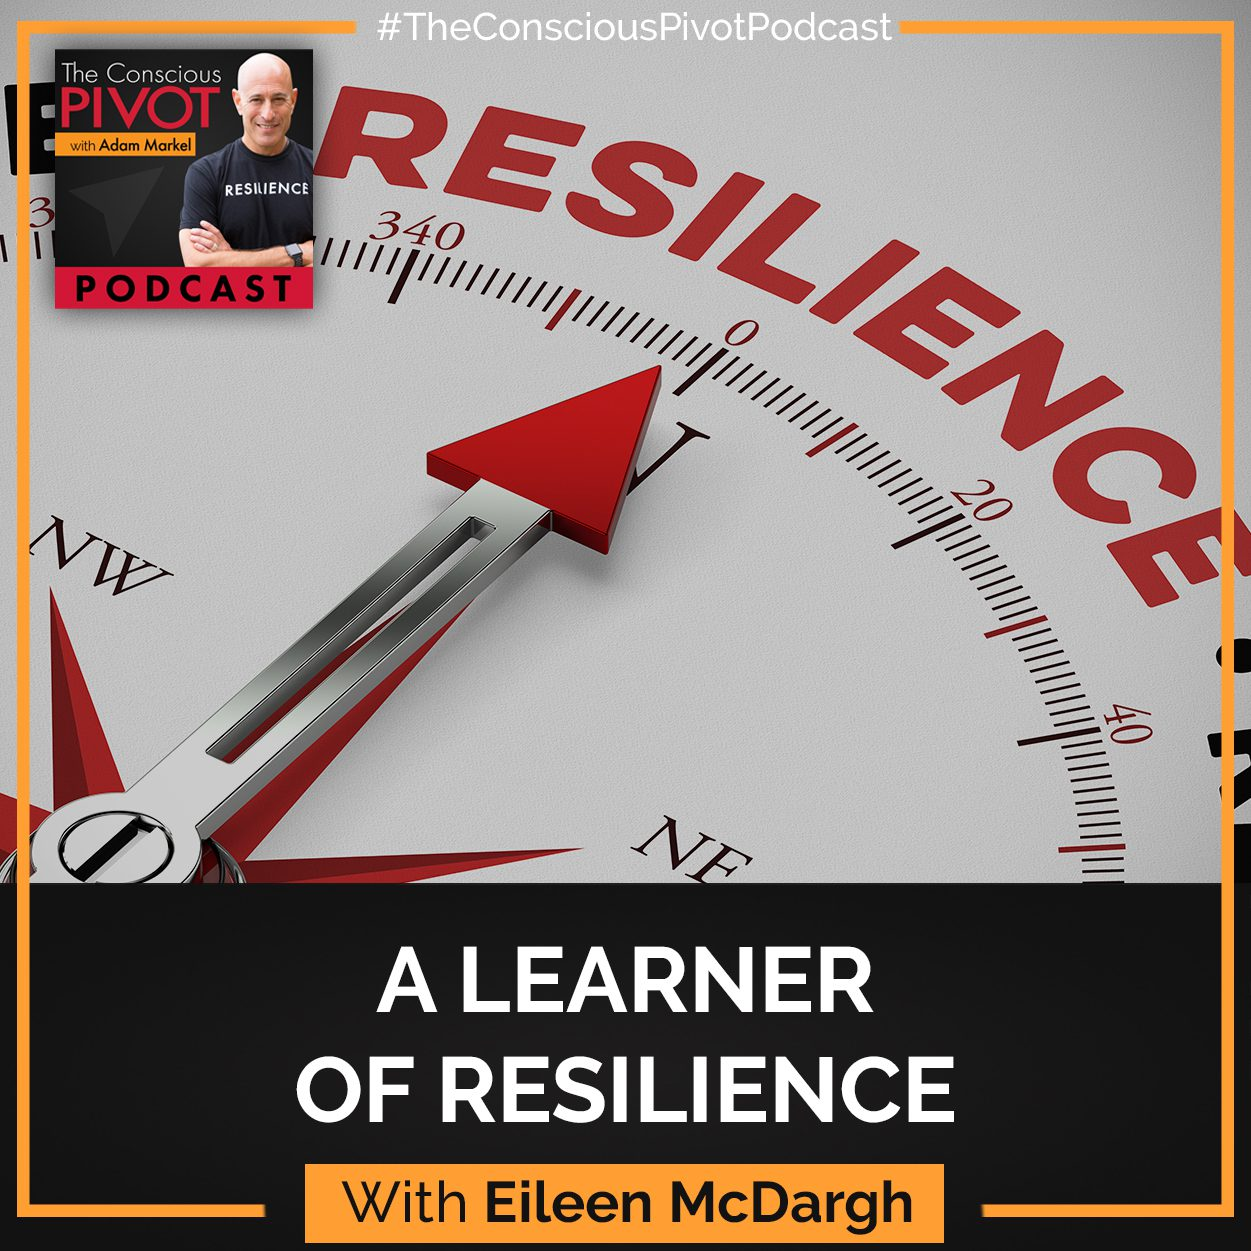 Eileen McDargh: A Learner Of Resilience